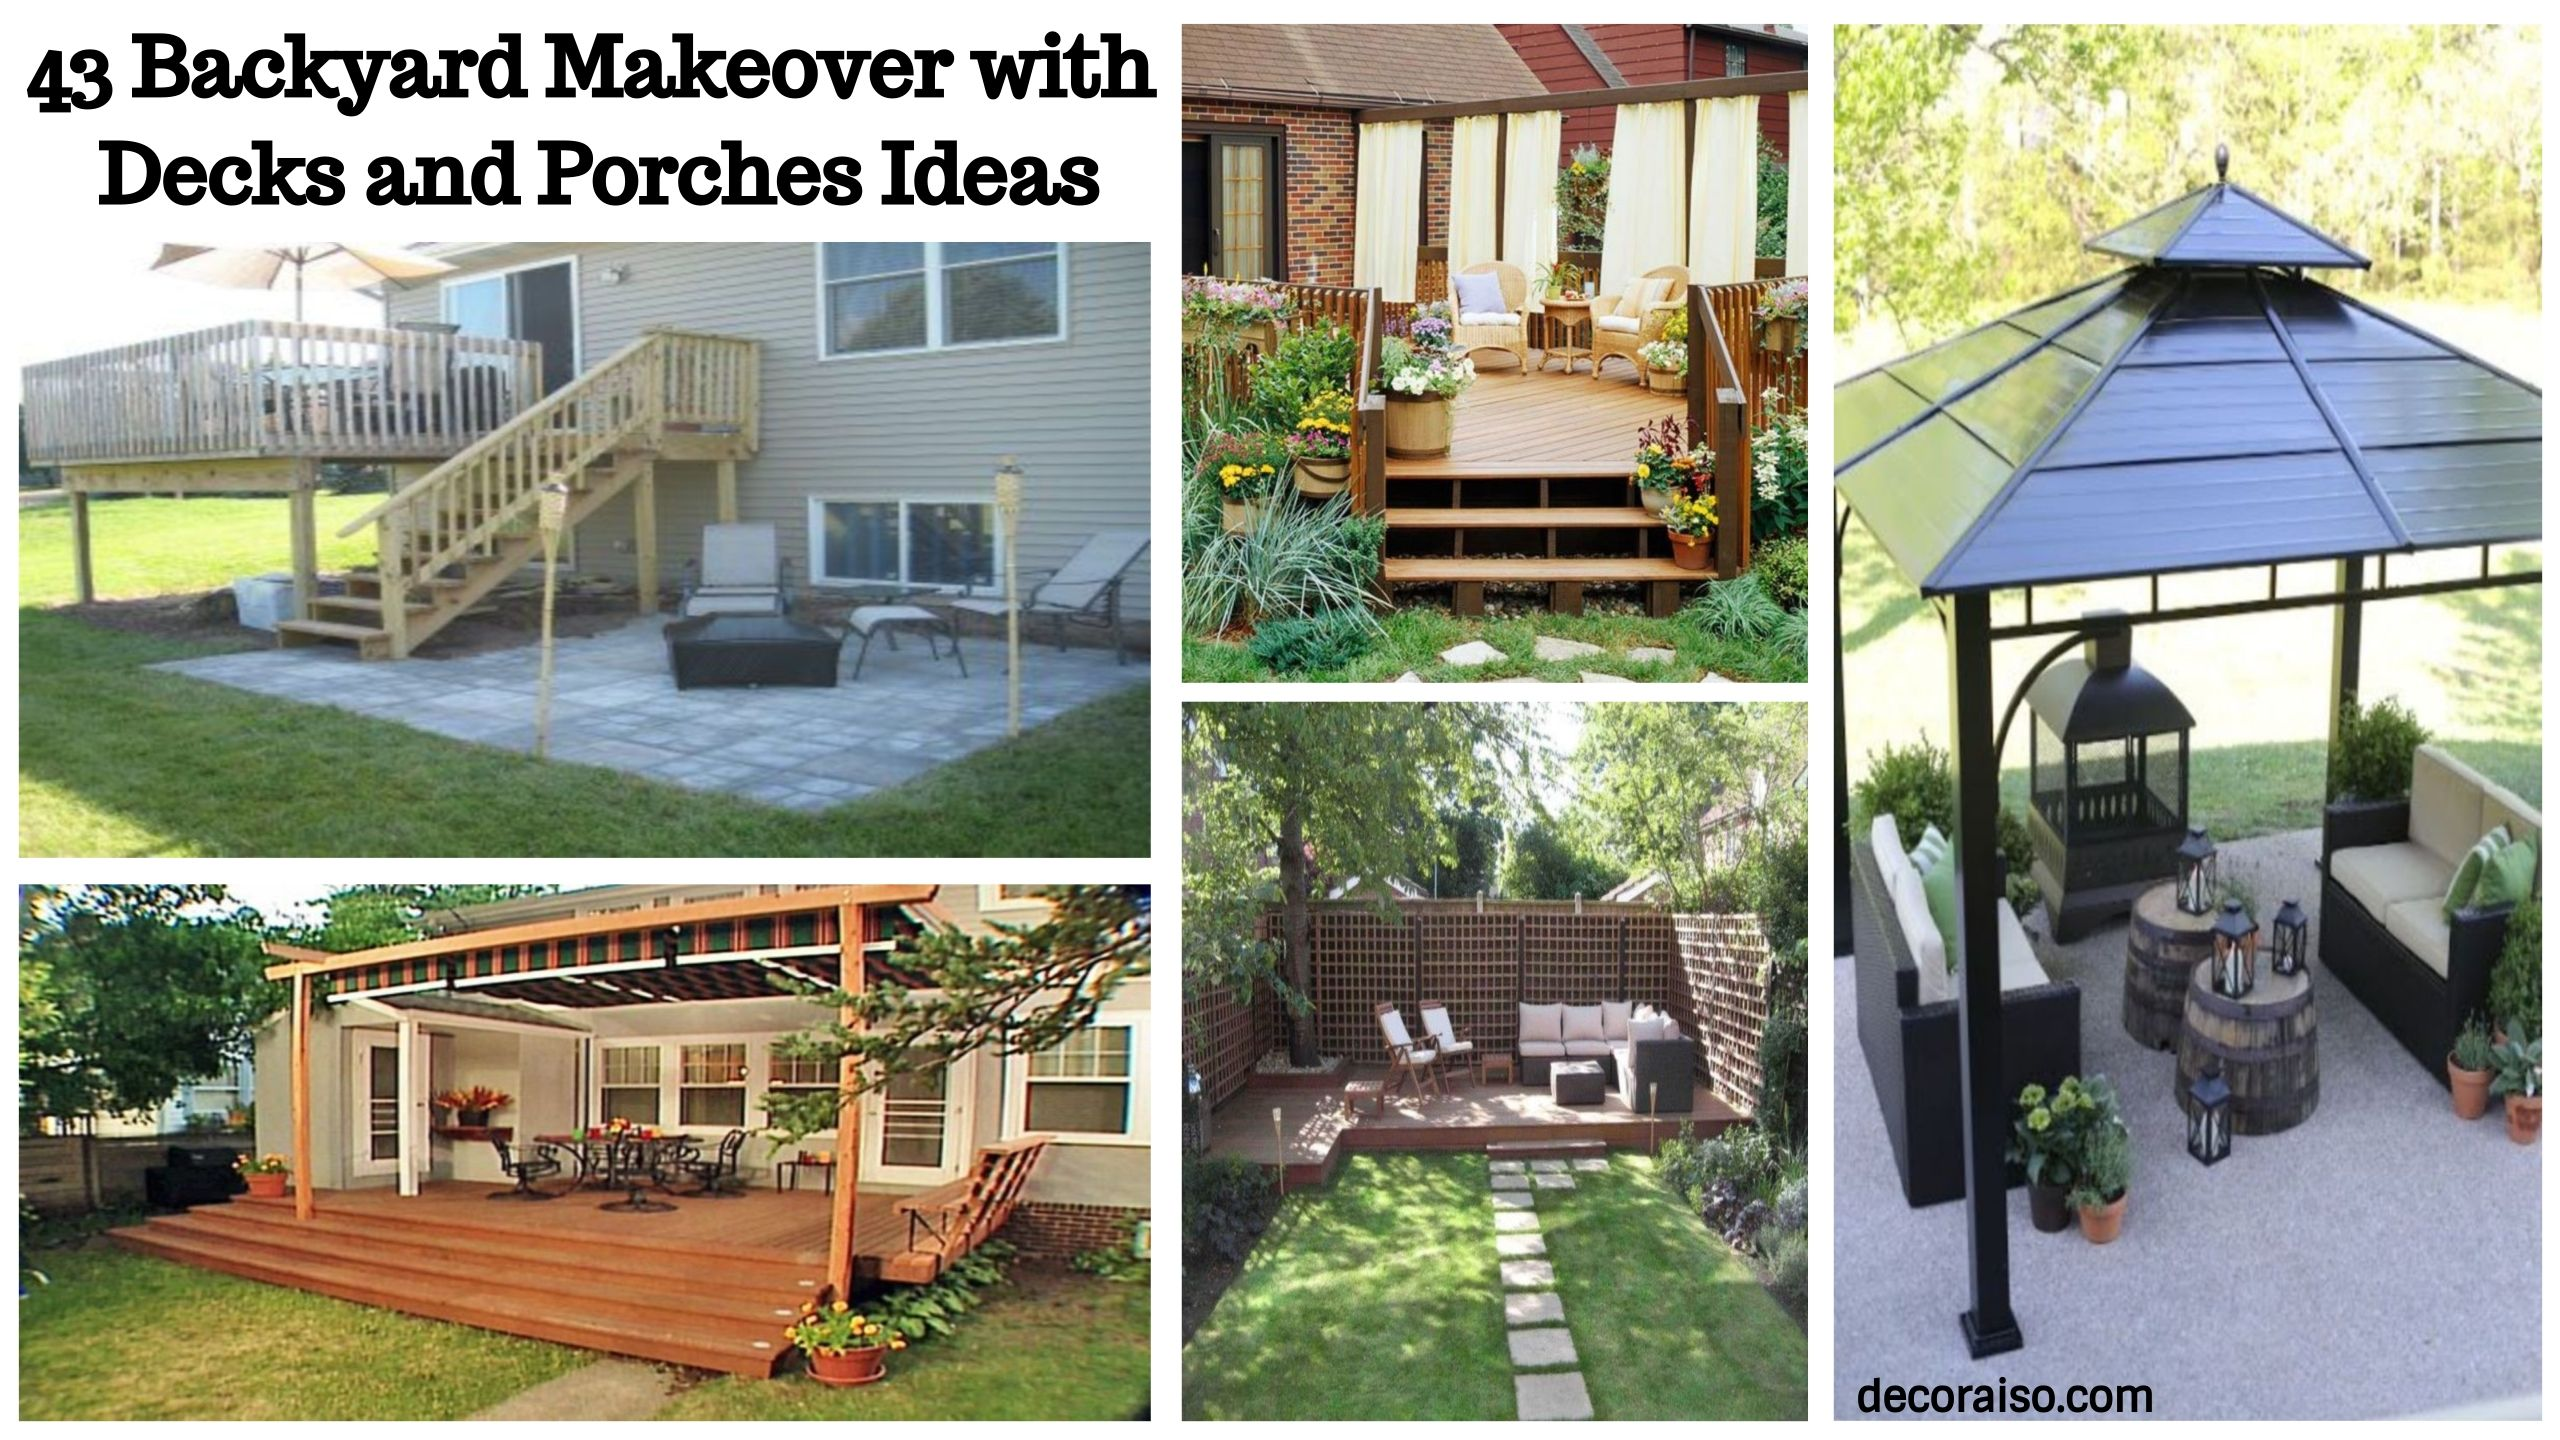 Gorgeous 43 Backyard Makeover With Decks And Porches Ideas Httpdecoraisocom